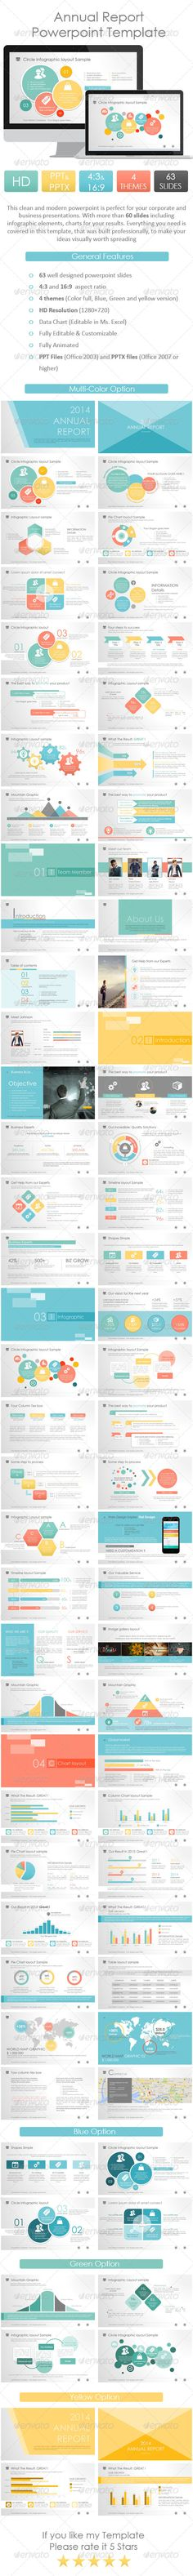 Buy 2014 Annual Report Powerpoint Template by buicuong on GraphicRiver. FONTS USED: Make sure you have installed Century Gothic, Calibri_free font! Century Gothic (Headings) (comes with MS. Diagram Design, Ppt Design, Graphic Design, Presentation Design Template, Ppt Presentation, Powerpoint Designs, Powerpoint Presentations, Brand Identity Design, Keynote